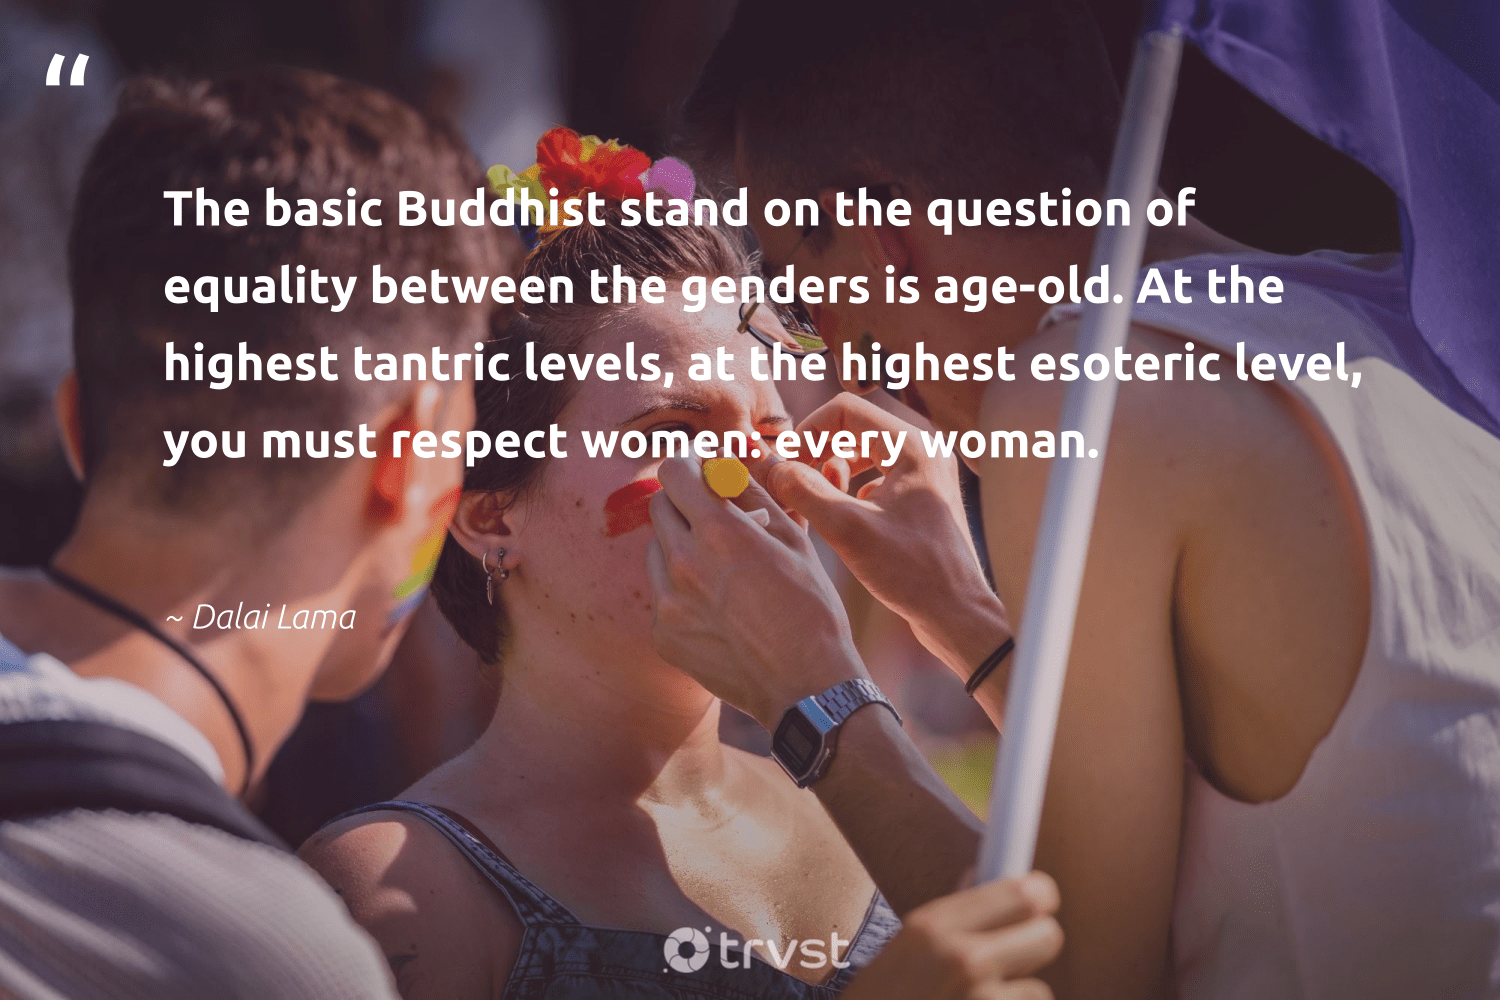 """The basic Buddhist stand on the question of equality between the genders is age-old. At the highest tantric levels, at the highest esoteric level, you must respect women: every woman.""  - Dalai Lama #trvst #quotes #equality #empowerment #giveback #bethechange #takeaction #equalopportunity #socialgood #socialchange #dotherightthing #equalrights"